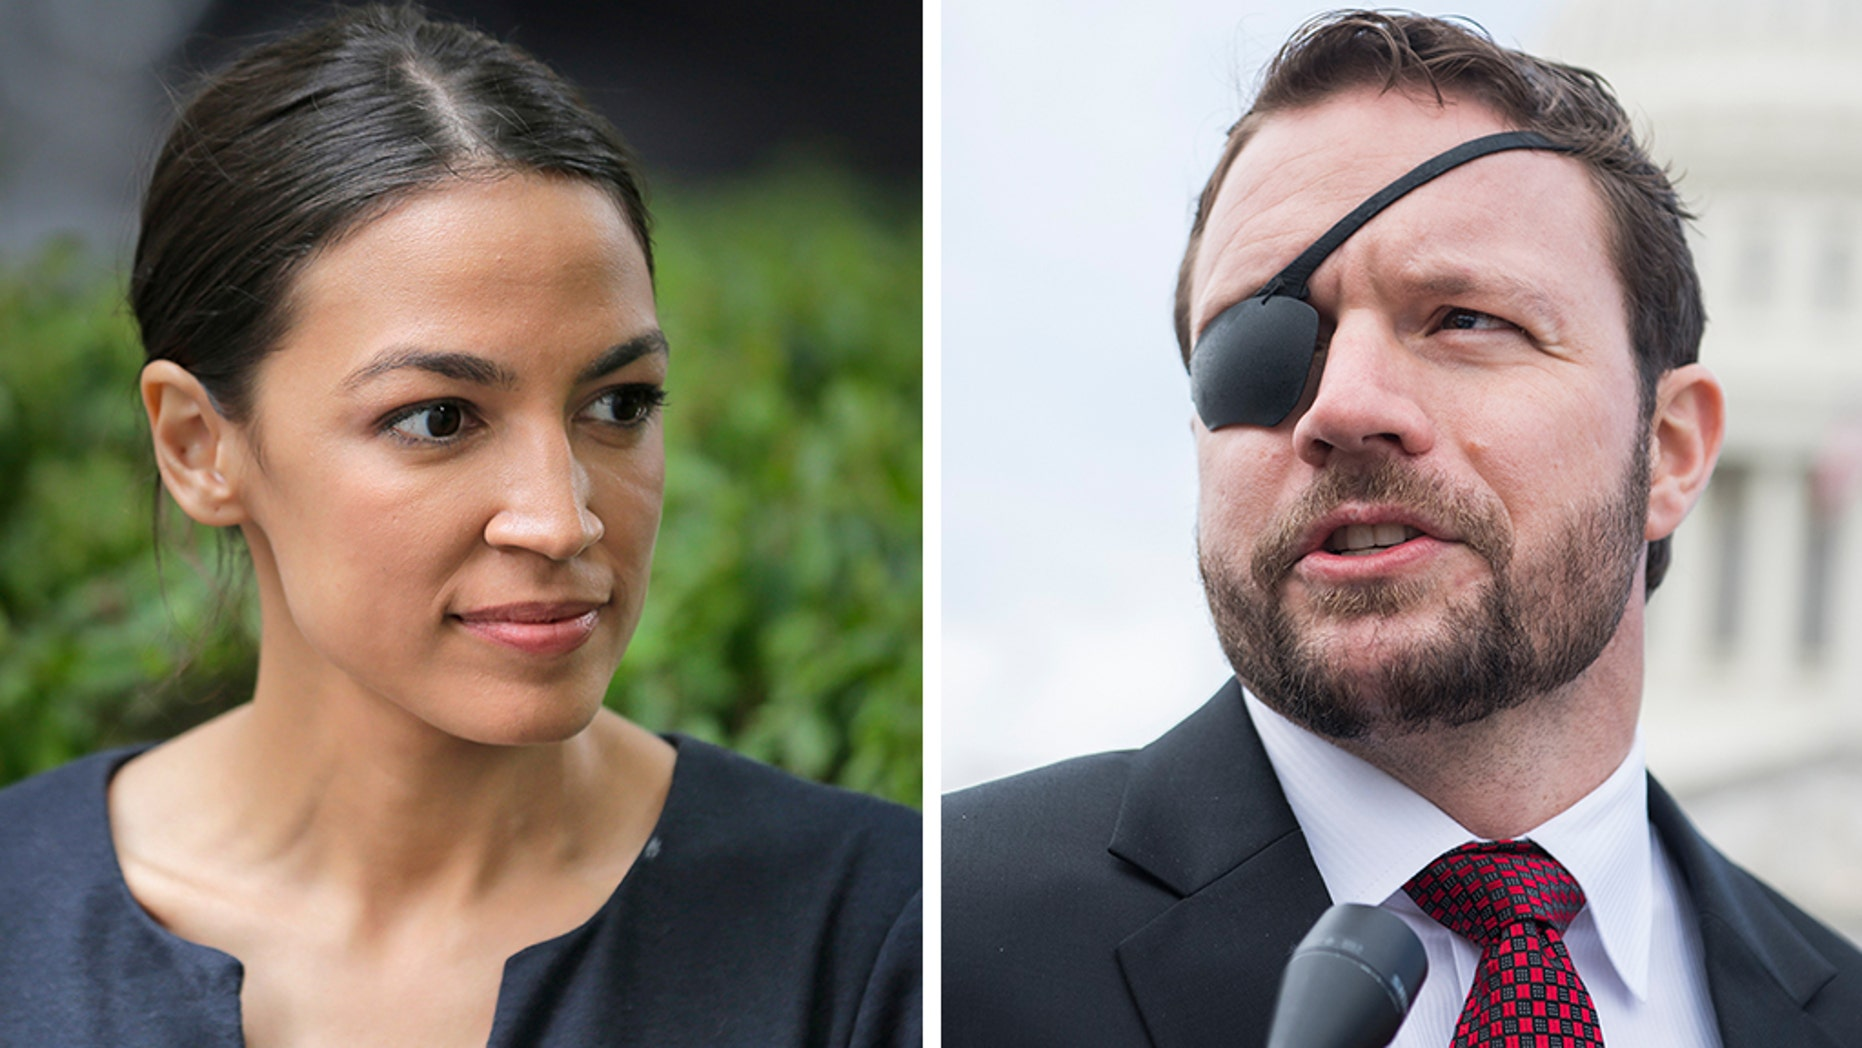 Rep. Dan Crenshaw, R-Texas, right, who lost an eye as a Navy SEAL in Afghanistan, tweeted a shot at both the New England Patriots monopoly and the progressive ideas of Rep.Alexandria Ocasio-Cortez, D-N.Y. (AP / Getty)